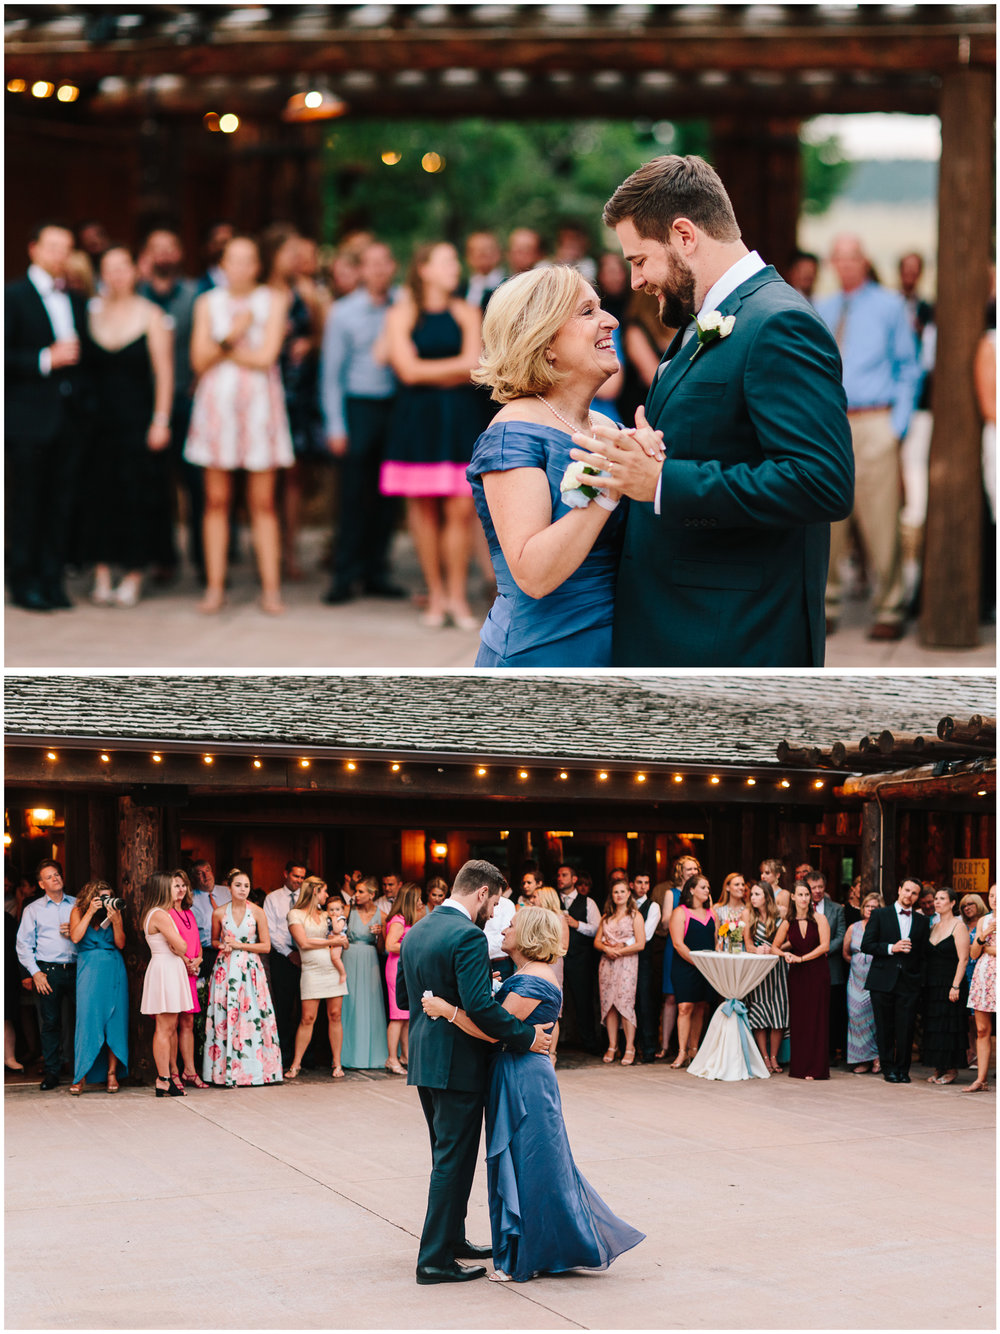 Spruce_Mountain_Ranch_Wedding_65.jpg